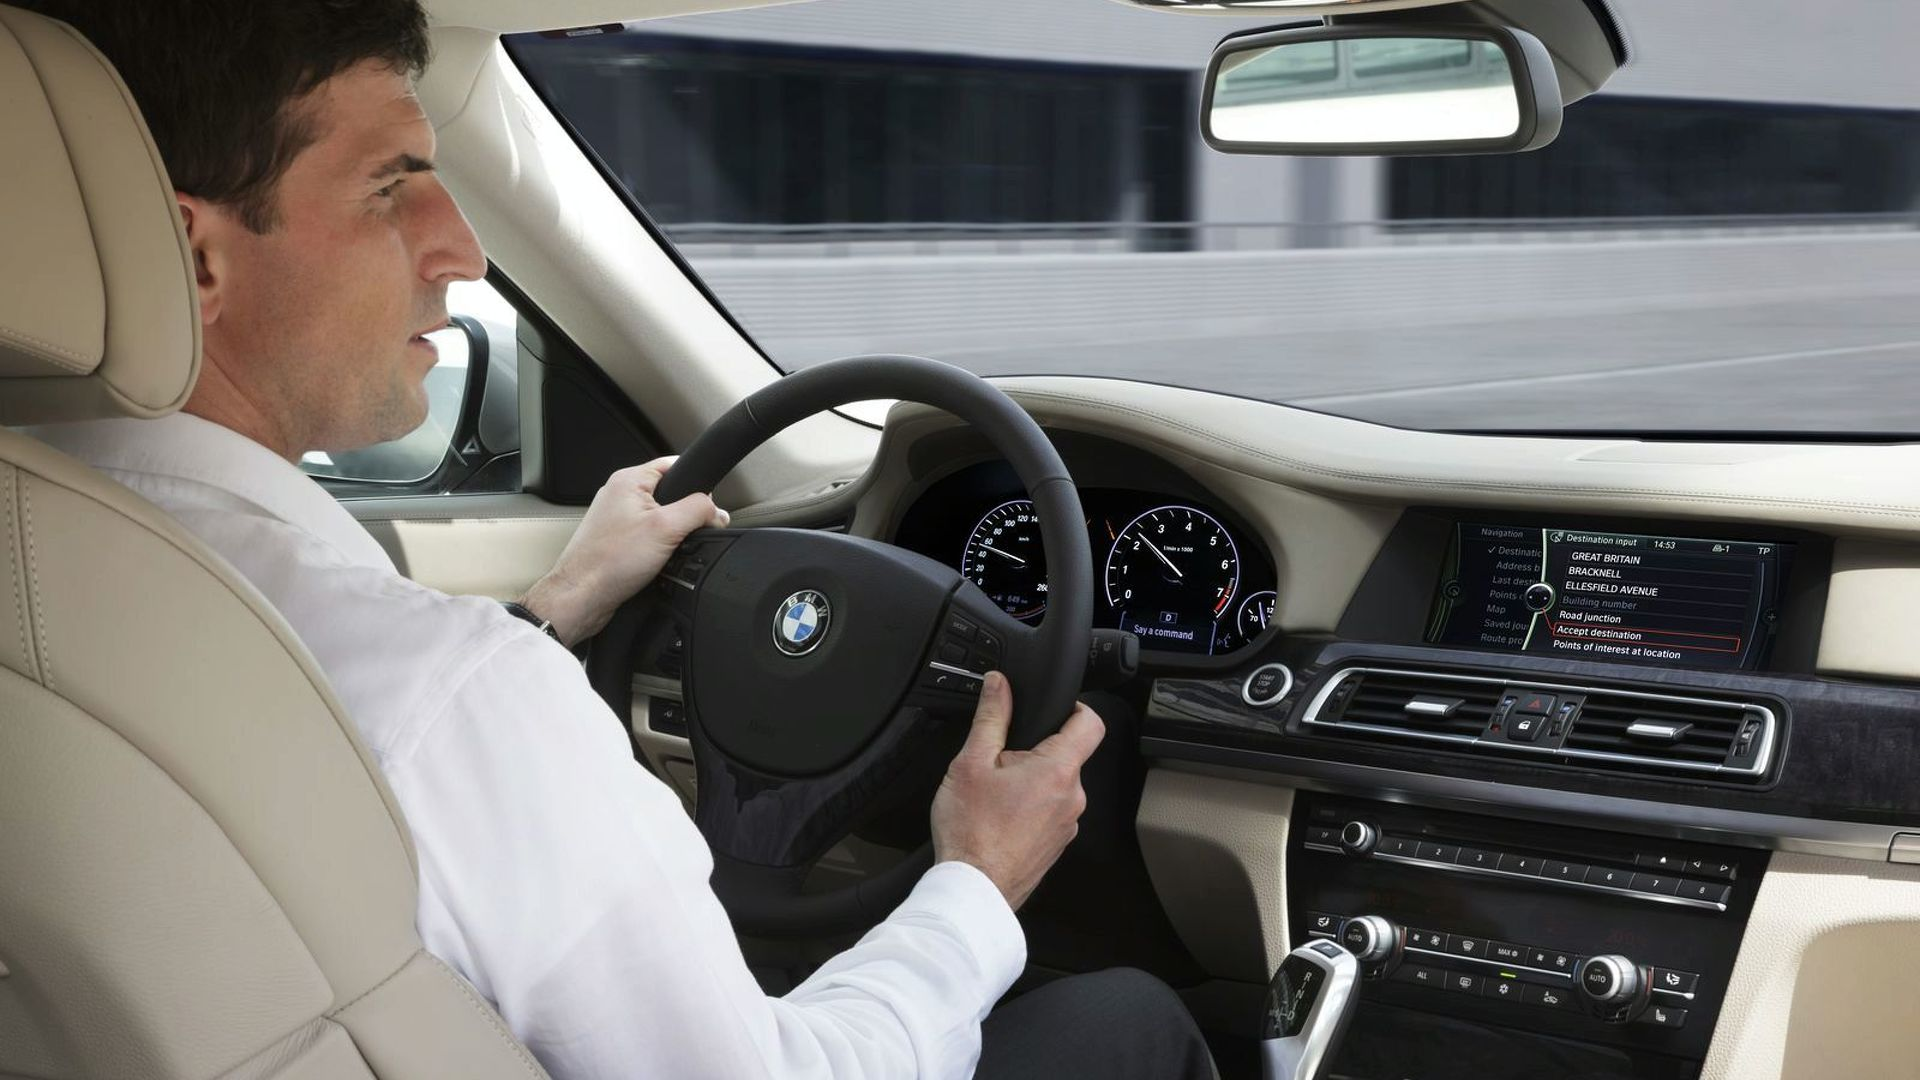 New BMW Voice Control System